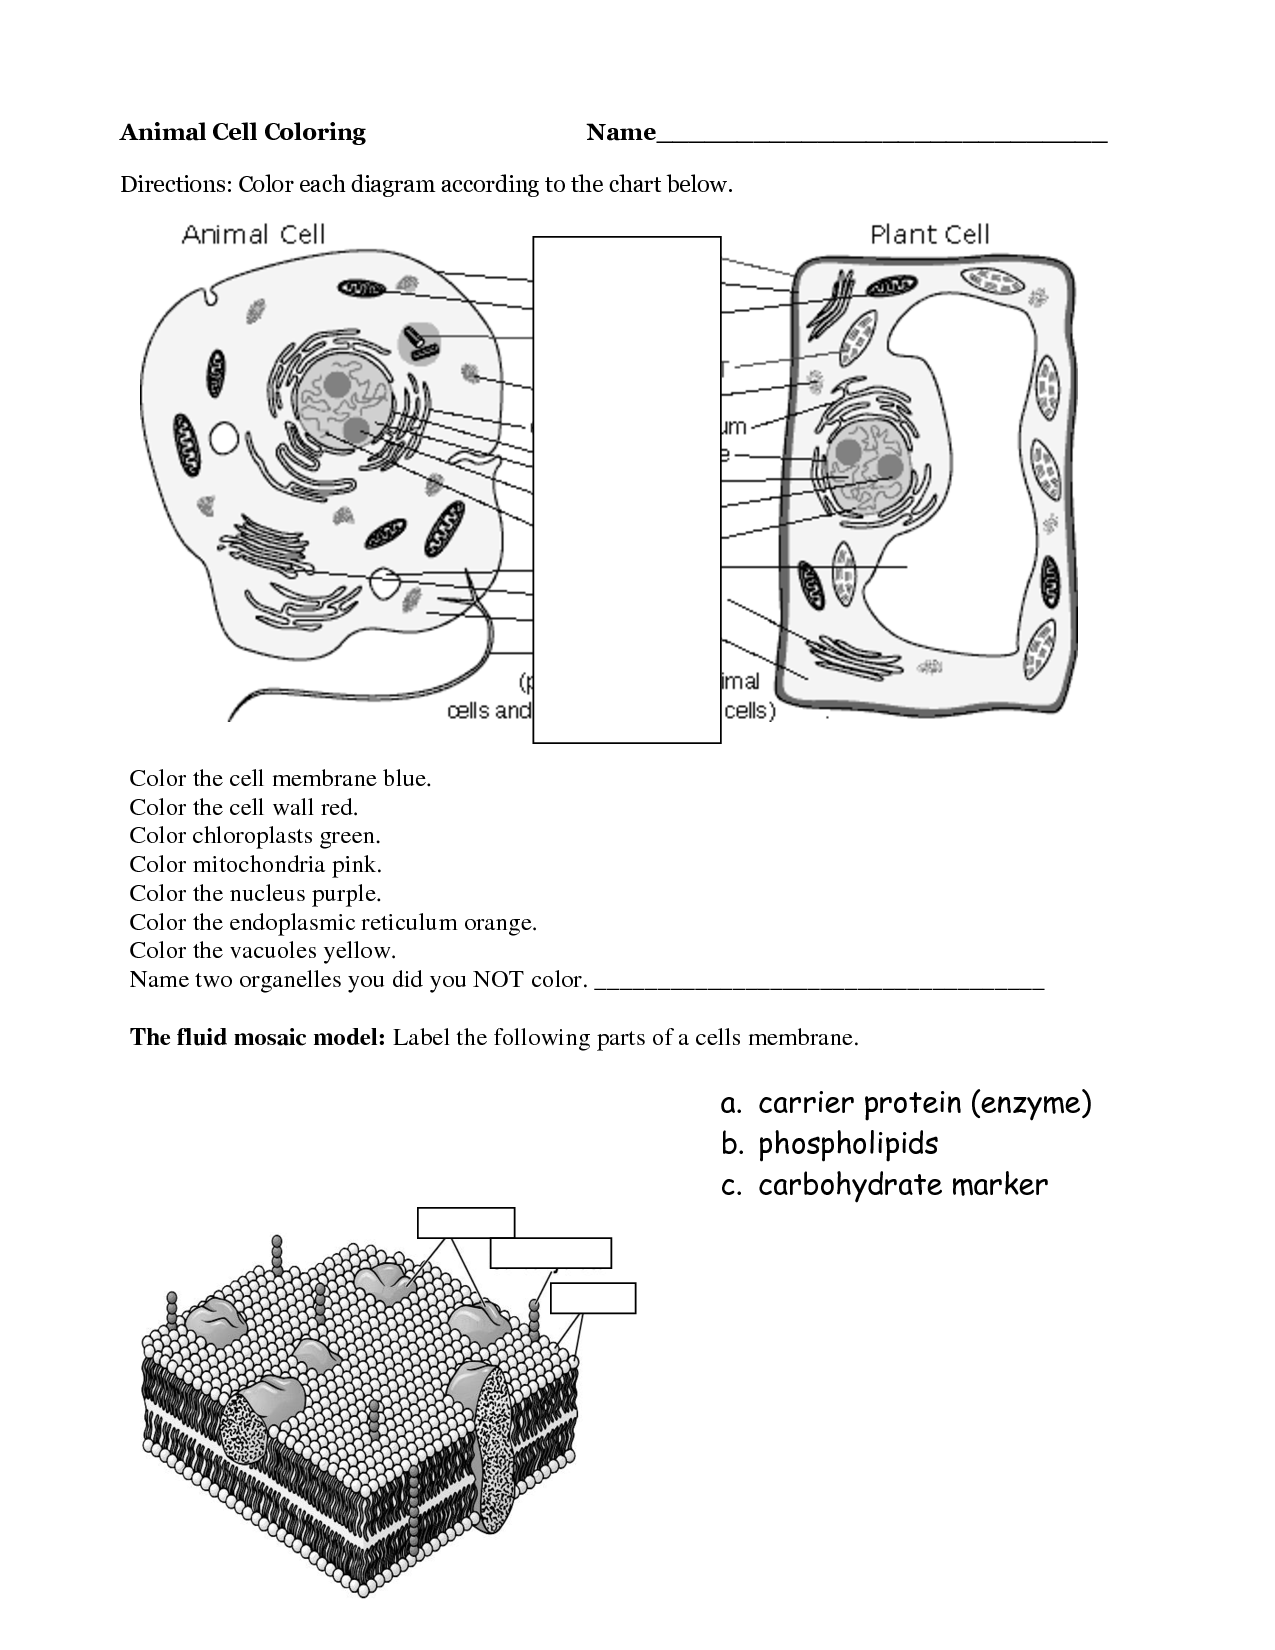 cell coloring worksheet cell membrane coloring worksheet key nidecmege cell worksheet coloring